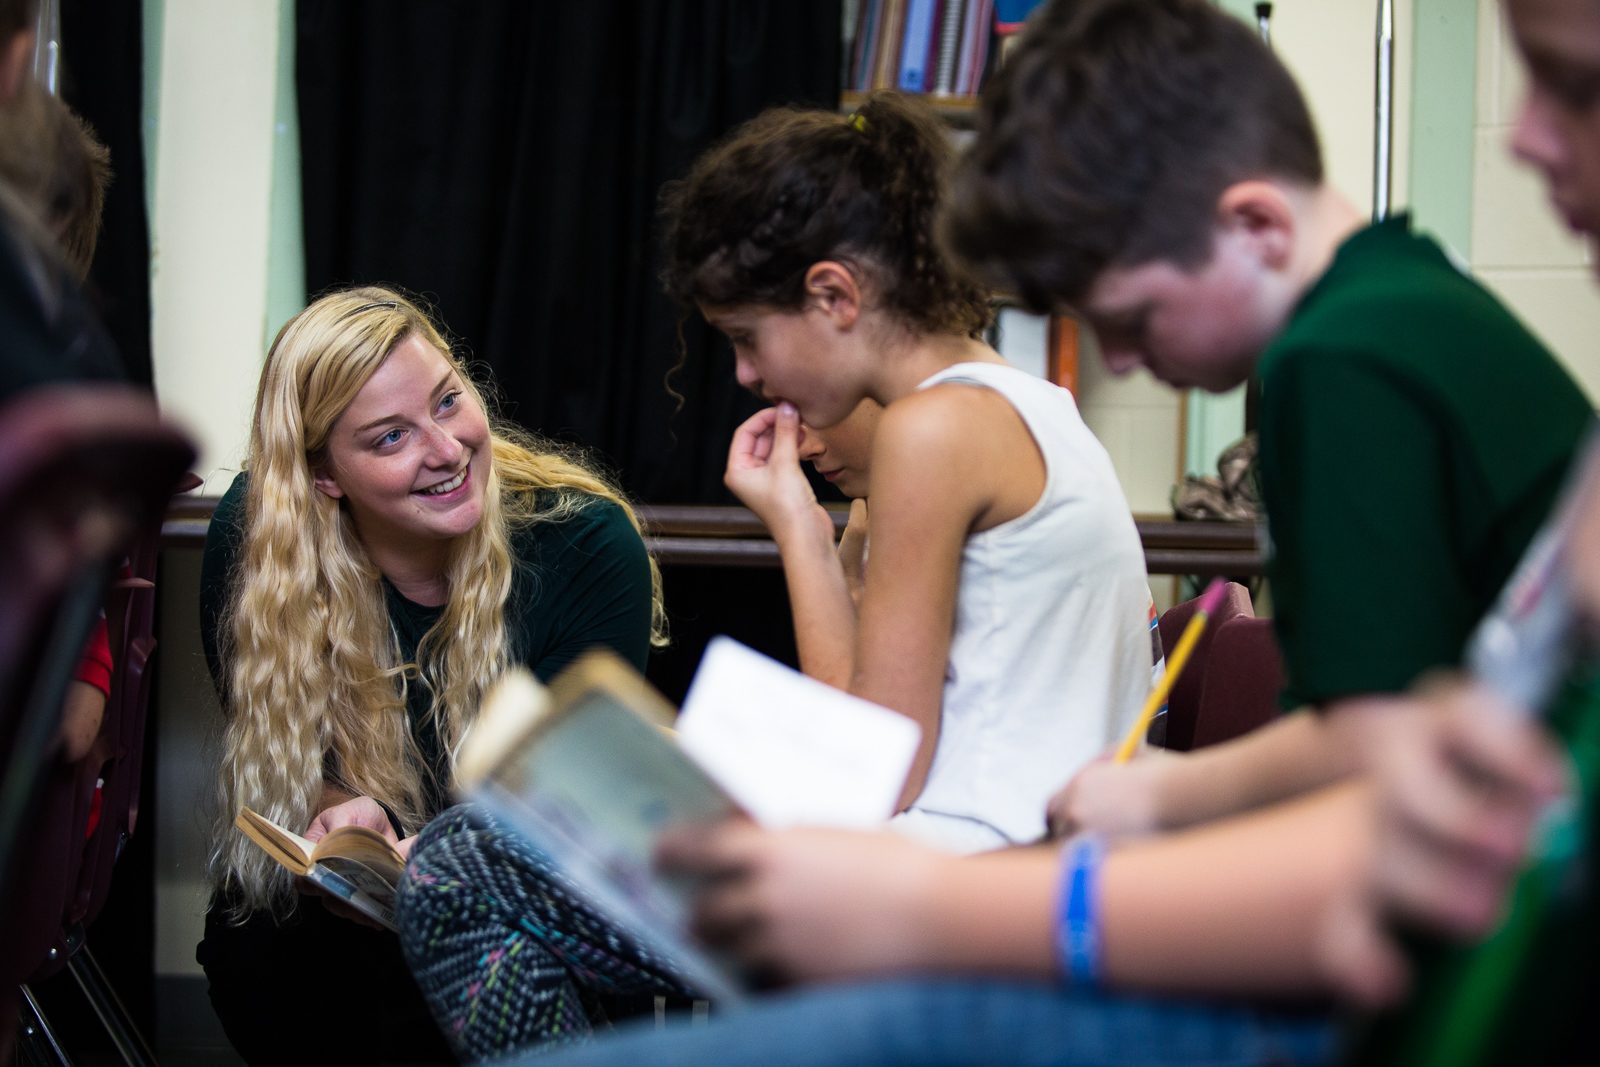 Teacher Cassie Underwood talks to her fifth grade students during a Global Read Aloud exchange with a class in New York, at Fletcher Elementary in Fletcher, Vermont on Thursday, October 20, 2016. by Monica Donovan for the George Lucas Educational Foundation